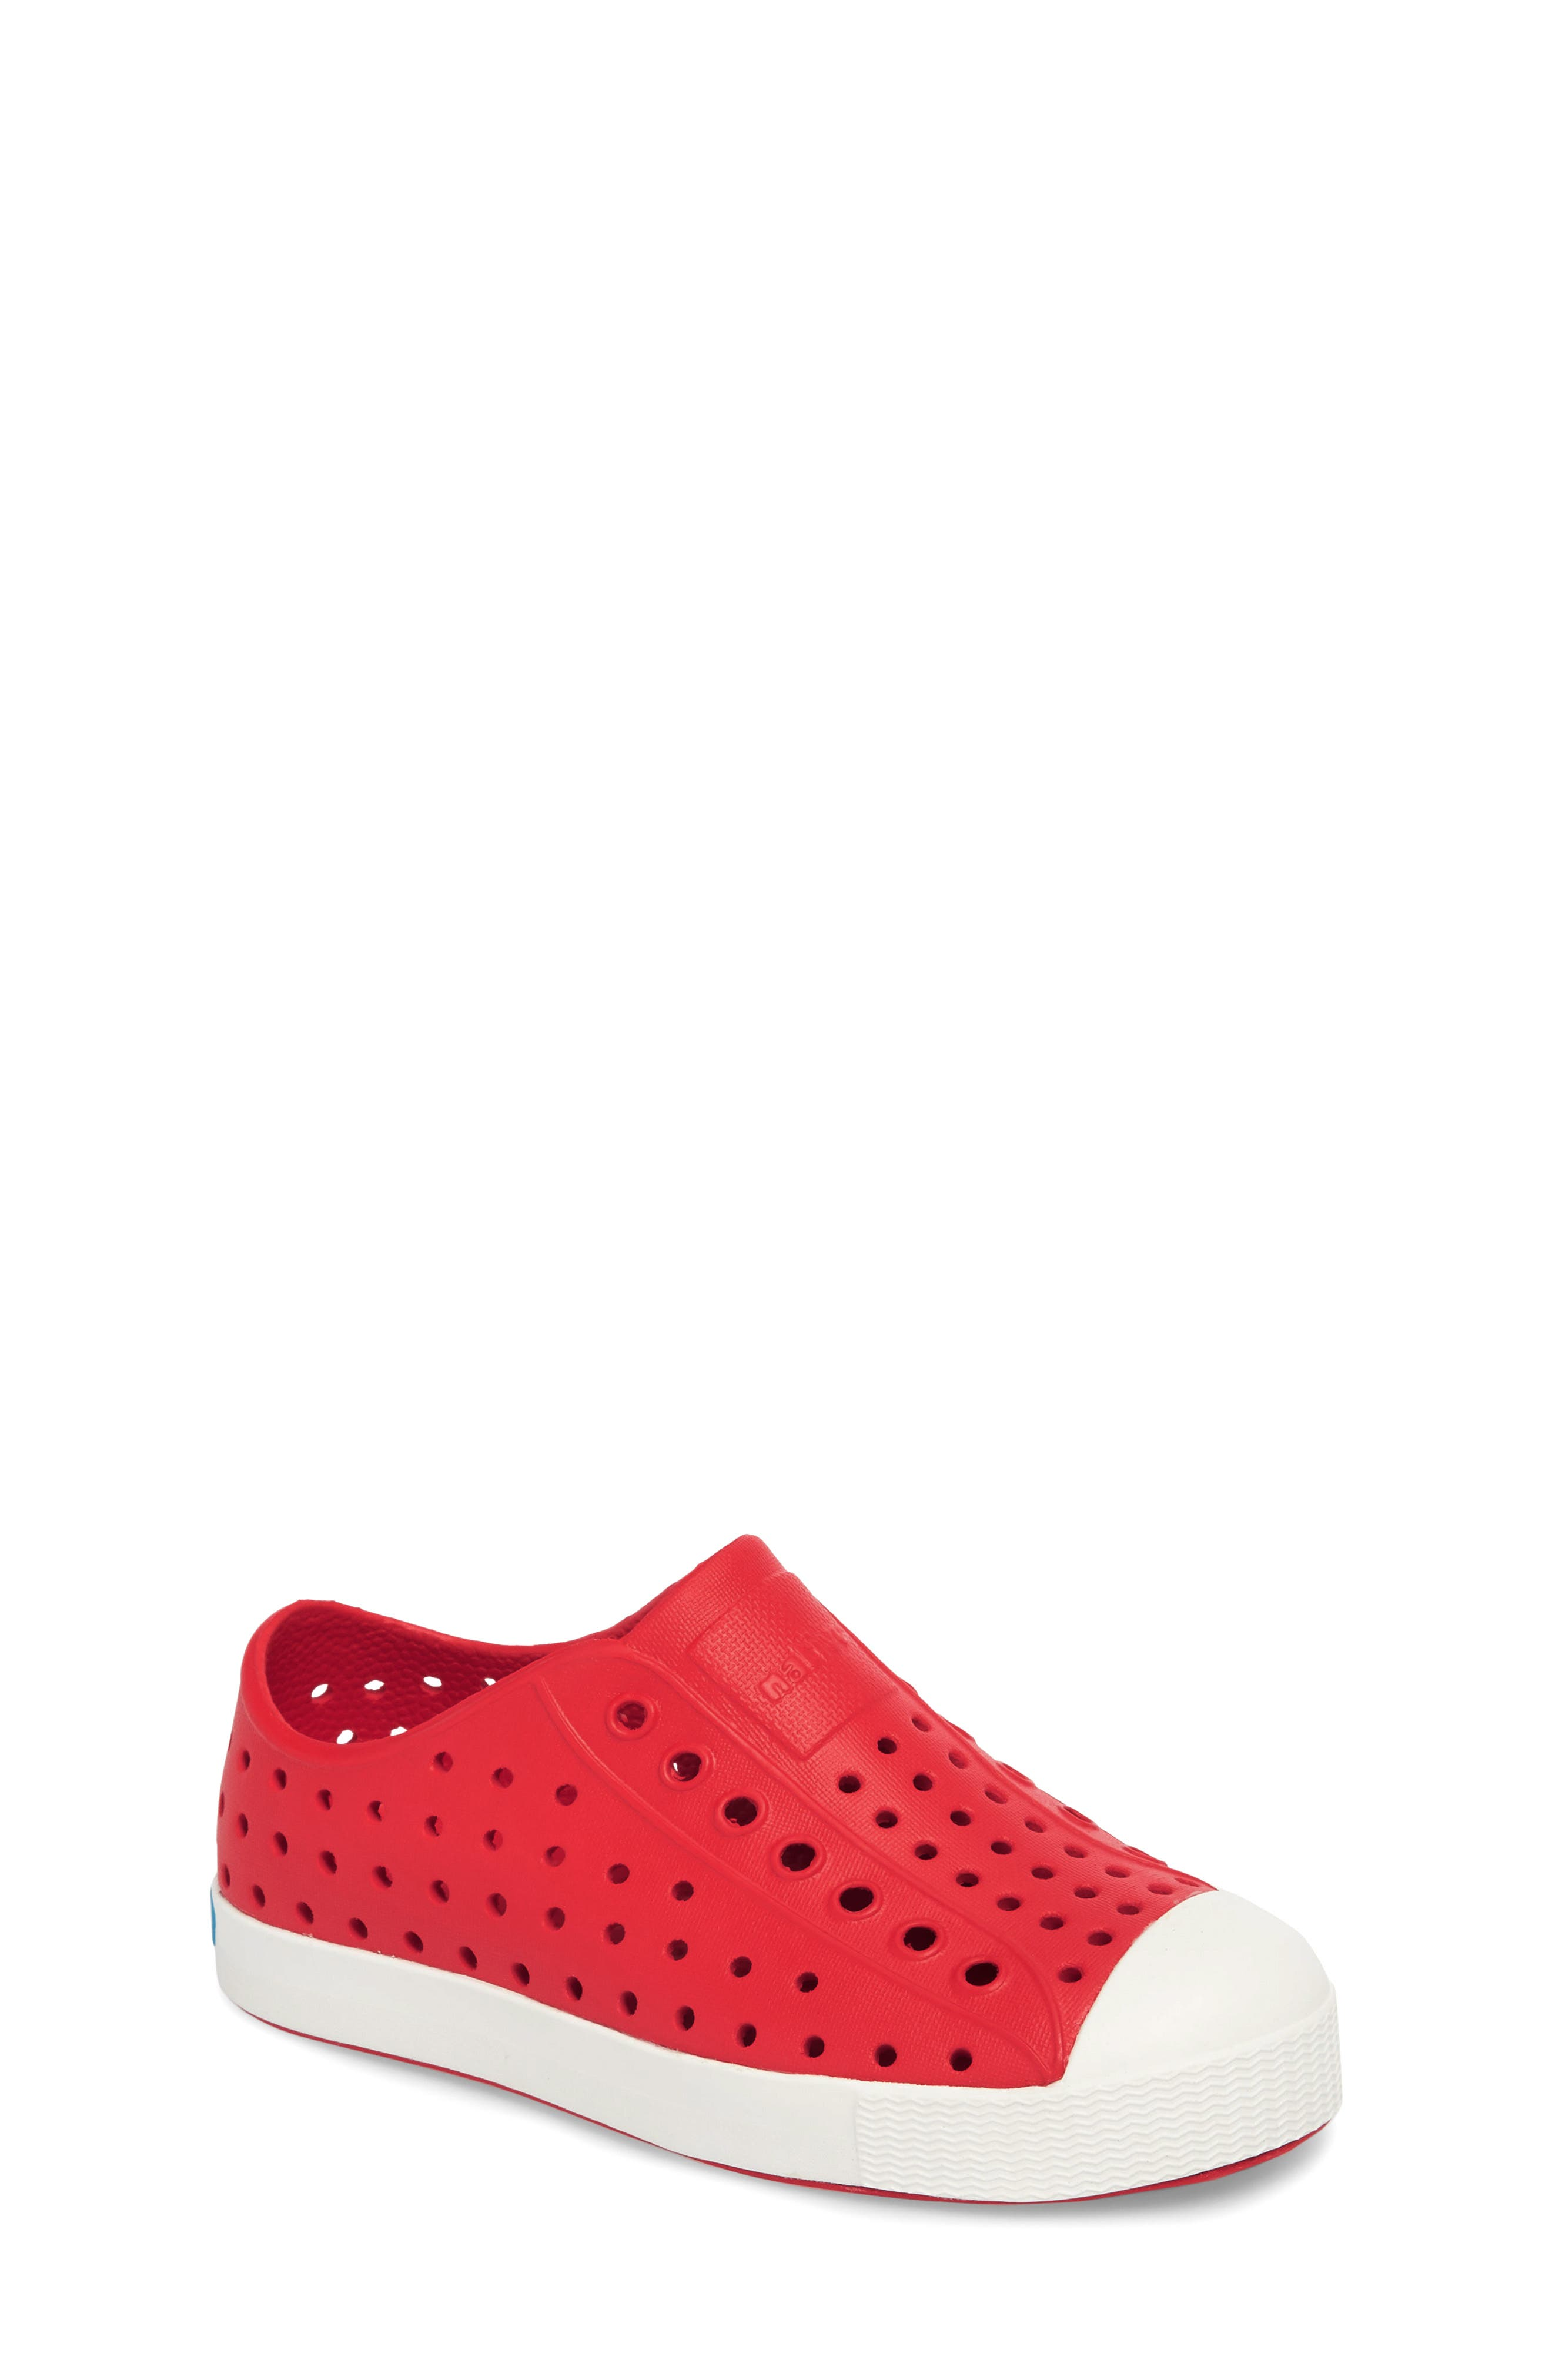 Jefferson Water Friendly Slip-On Vegan Sneaker, Main, color, TORCH RED/ SHELL WHITE